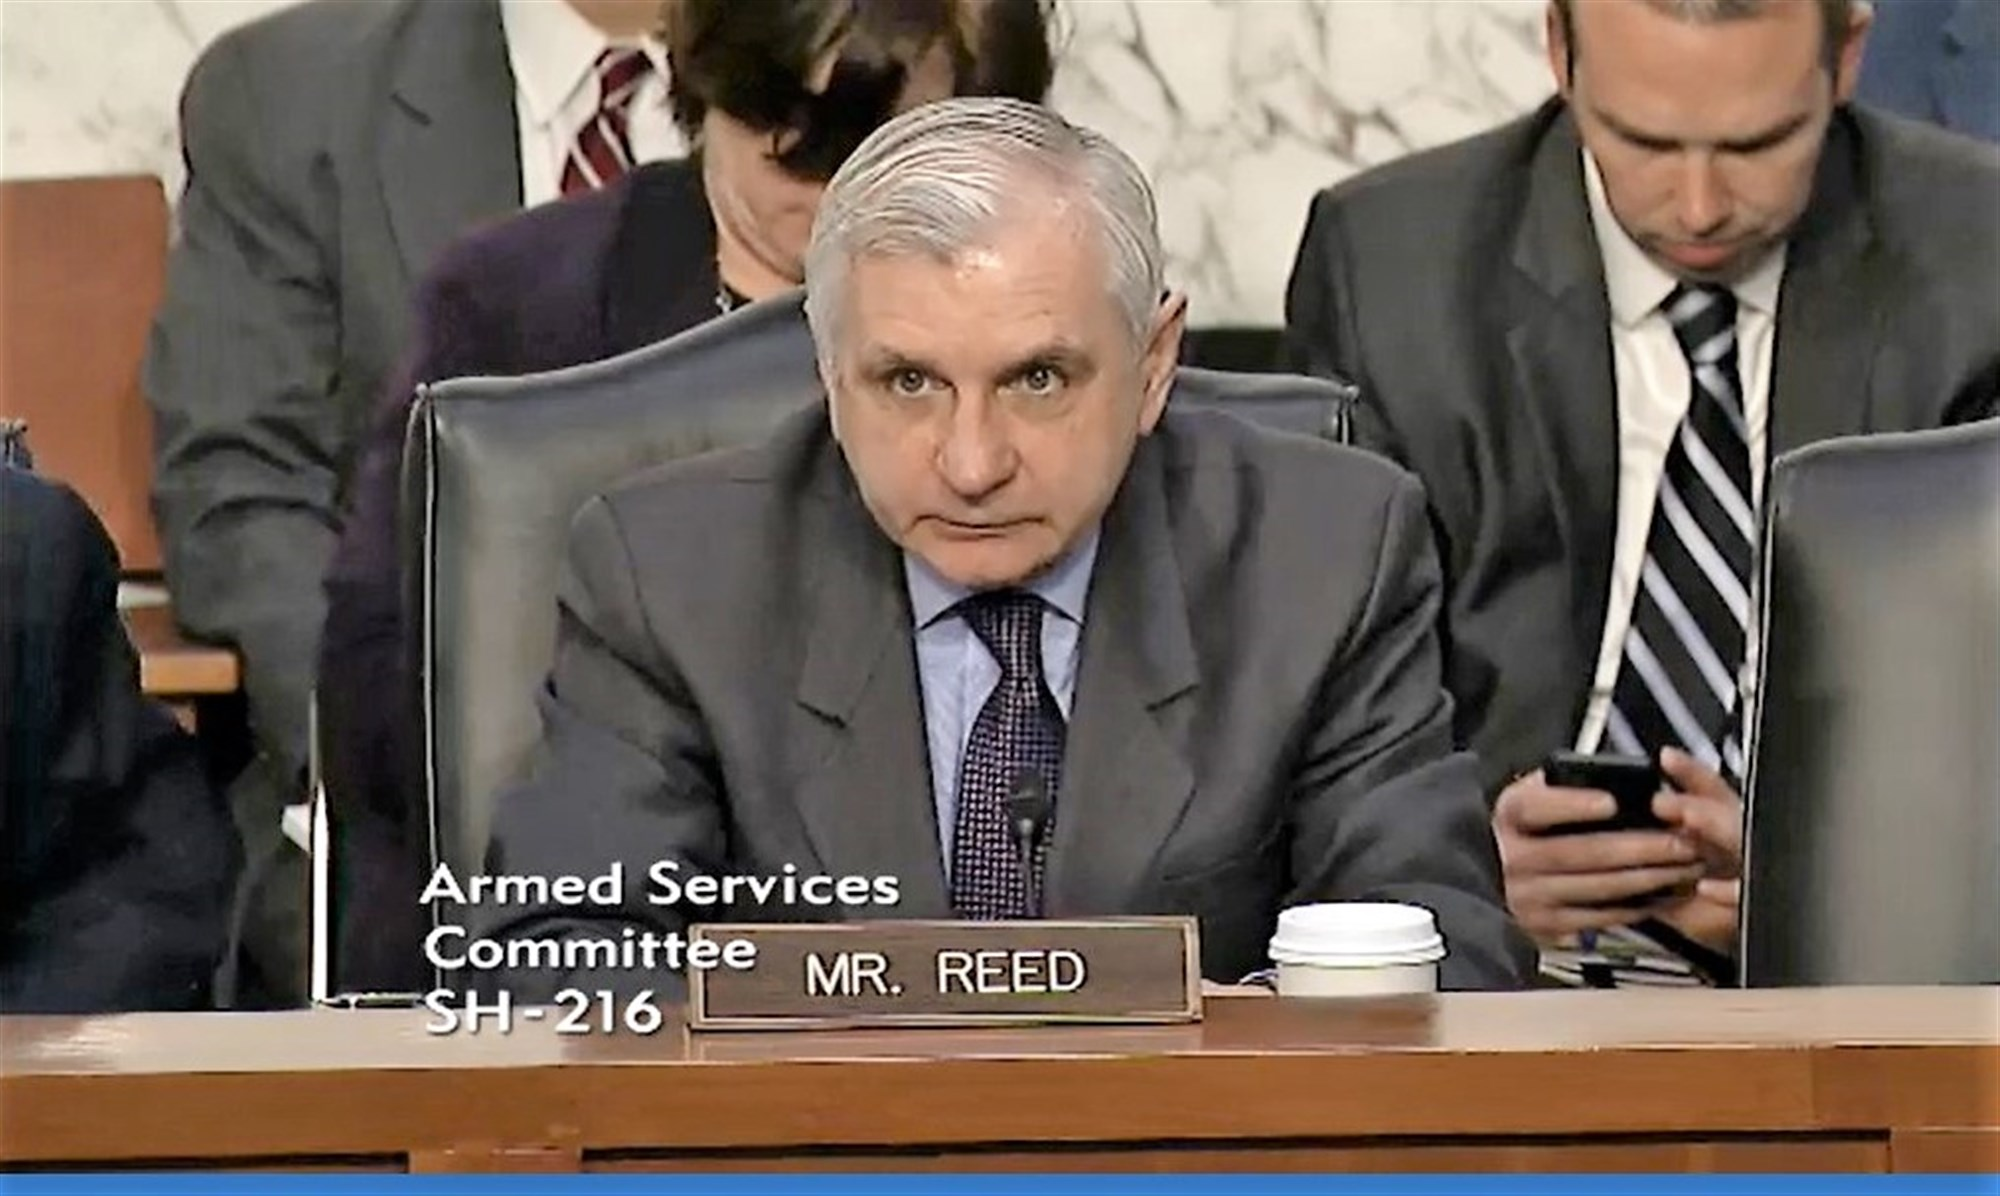 SASC Ranking Member, Sen. Jack Reed at hearing on AFRICOM and CENTCOM, Mar. 9, 2017, in Washington.  Gen. Thomas Waldhauser, AFRICOM commander, appeared before the committee for an annual session that allows members the opportunity receive updates from commanders and ask questions that inform decisions. During the hearing, Waldhauser submitted U.S. AFRICOM's official annual posture statement and answered questions related to the command's area of responsibility on topics ranging from counter-terrorism initiatives to the influence of other countries upon the African continent.  (Courtesy image)